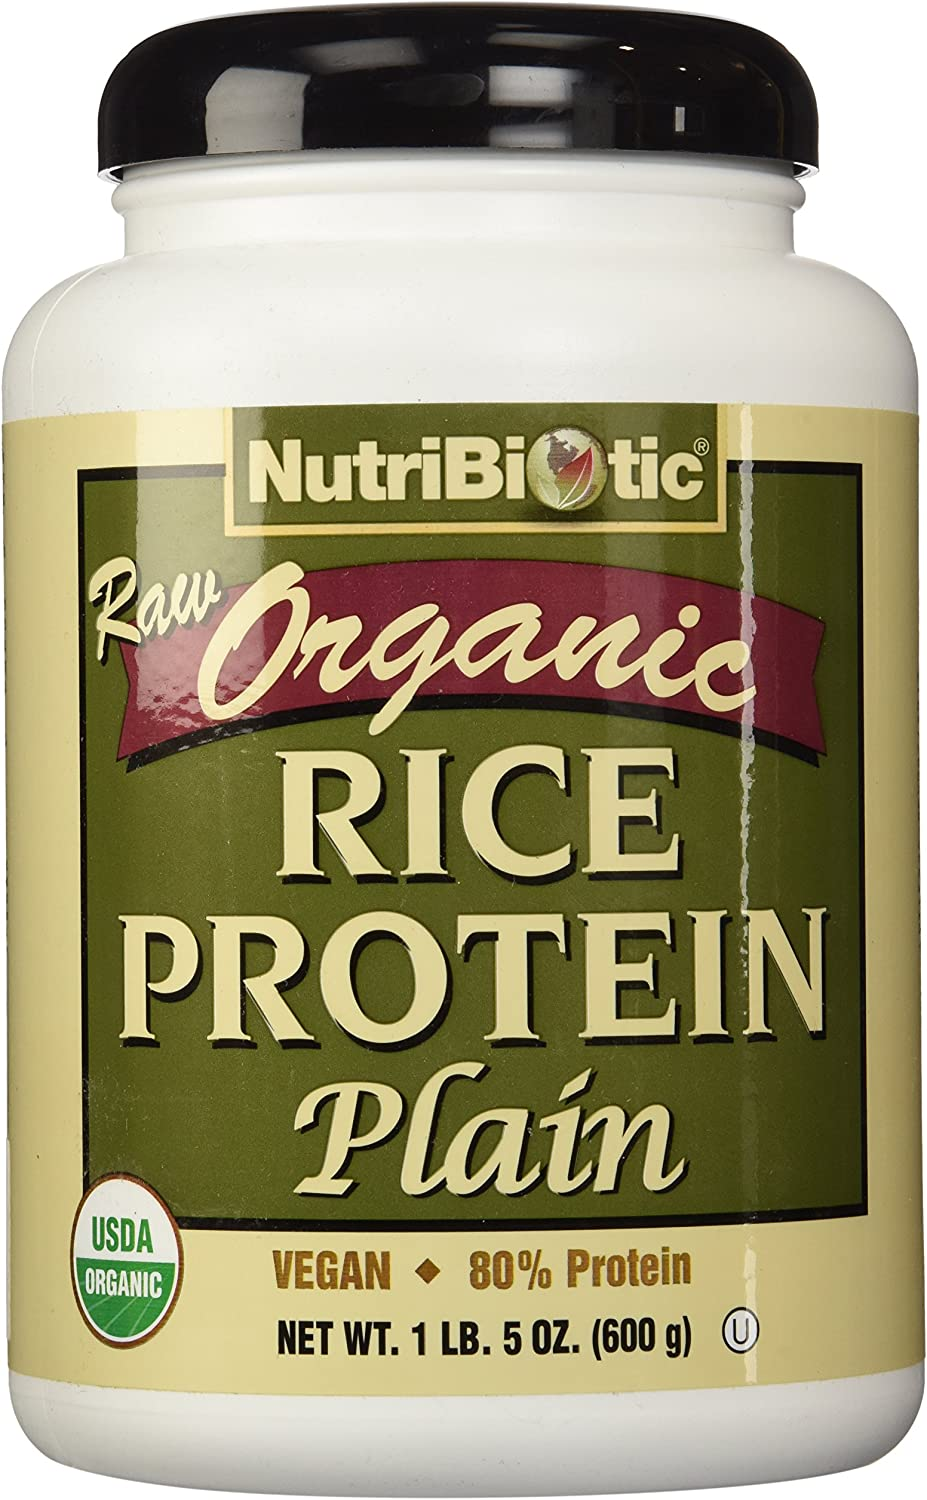 NutriBiotic Certified Organic Rice Protein Plain| 21 Ounce| Low Carbohydrate Vegan Protein Powder |Non-GMO| Gluten Free| Raw| Chemical-free Processing| Certified Kosher Keto Friendly| Easy to Digest: Health & Personal Care